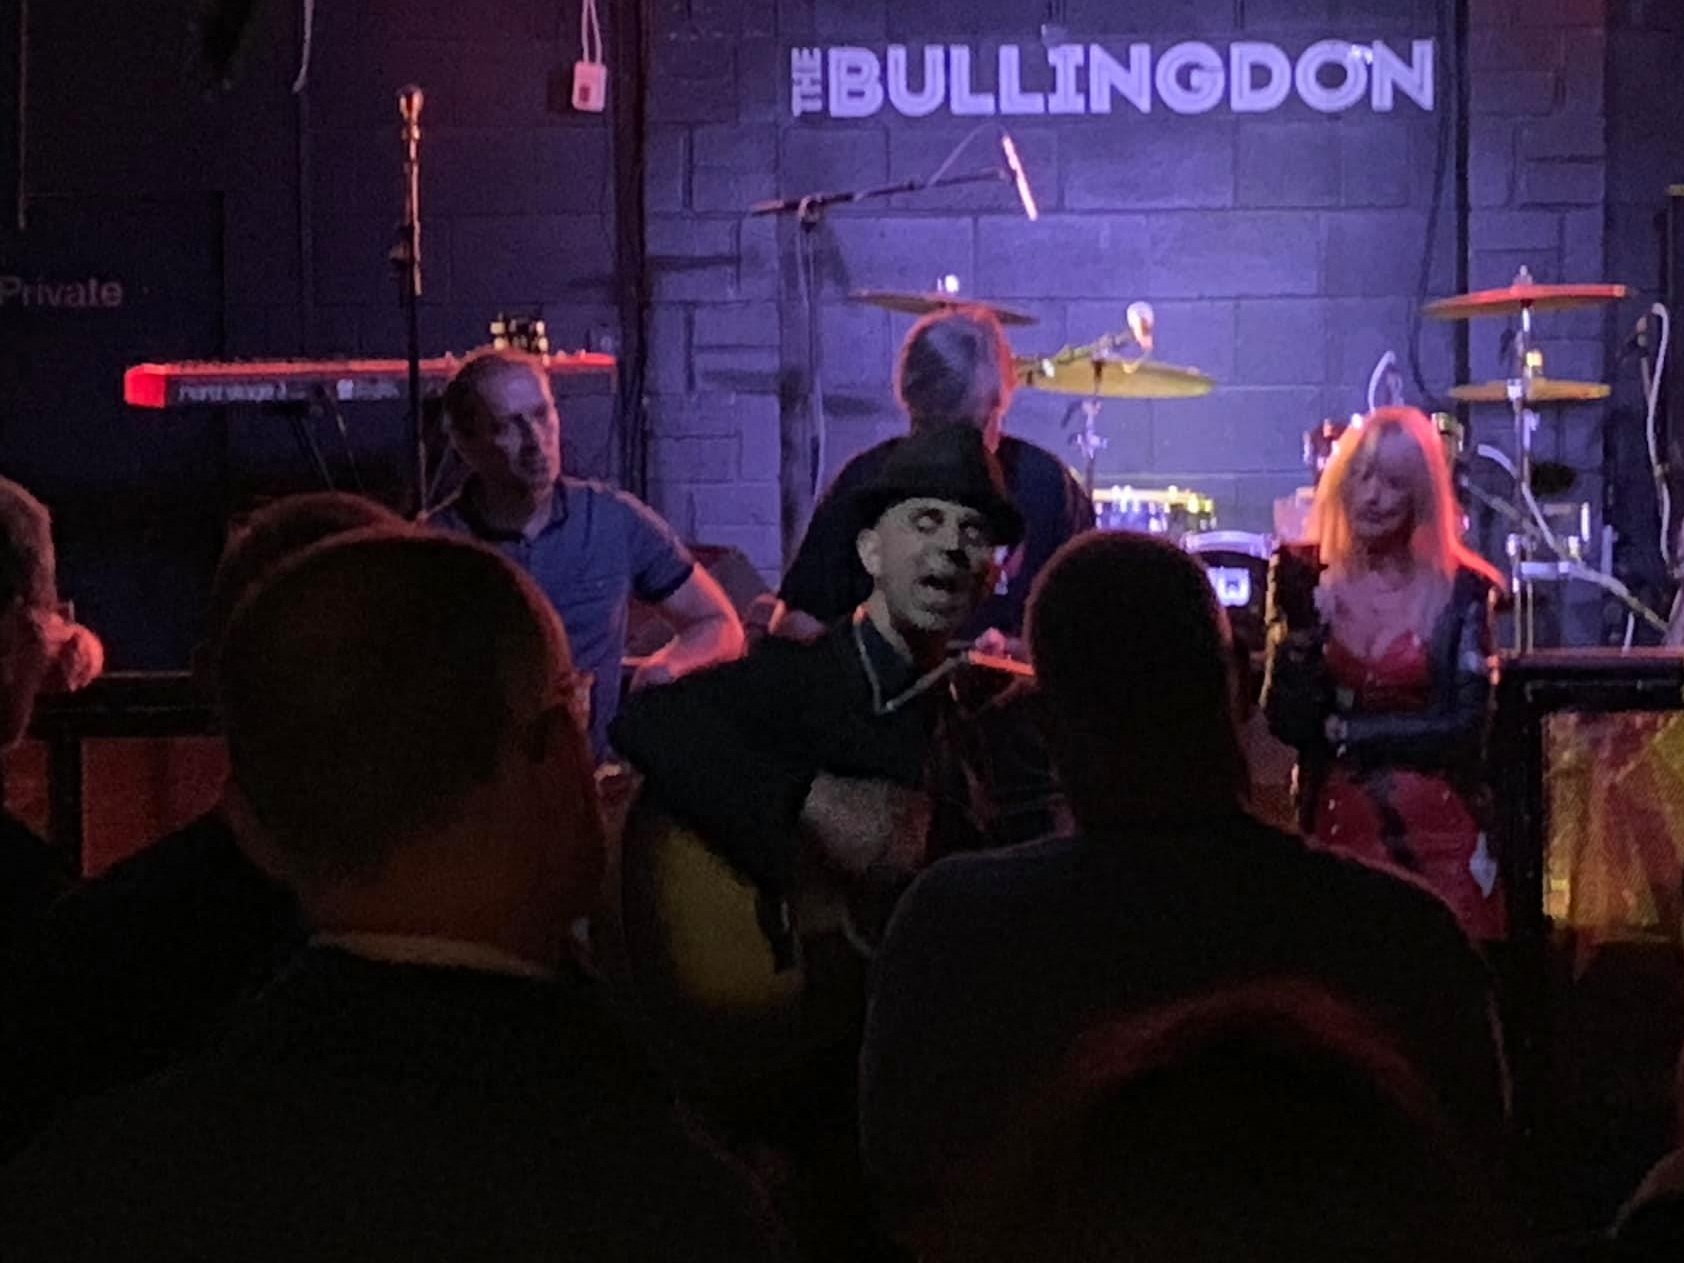 Singing in the crowd at The Bullingdon. (Oxford)